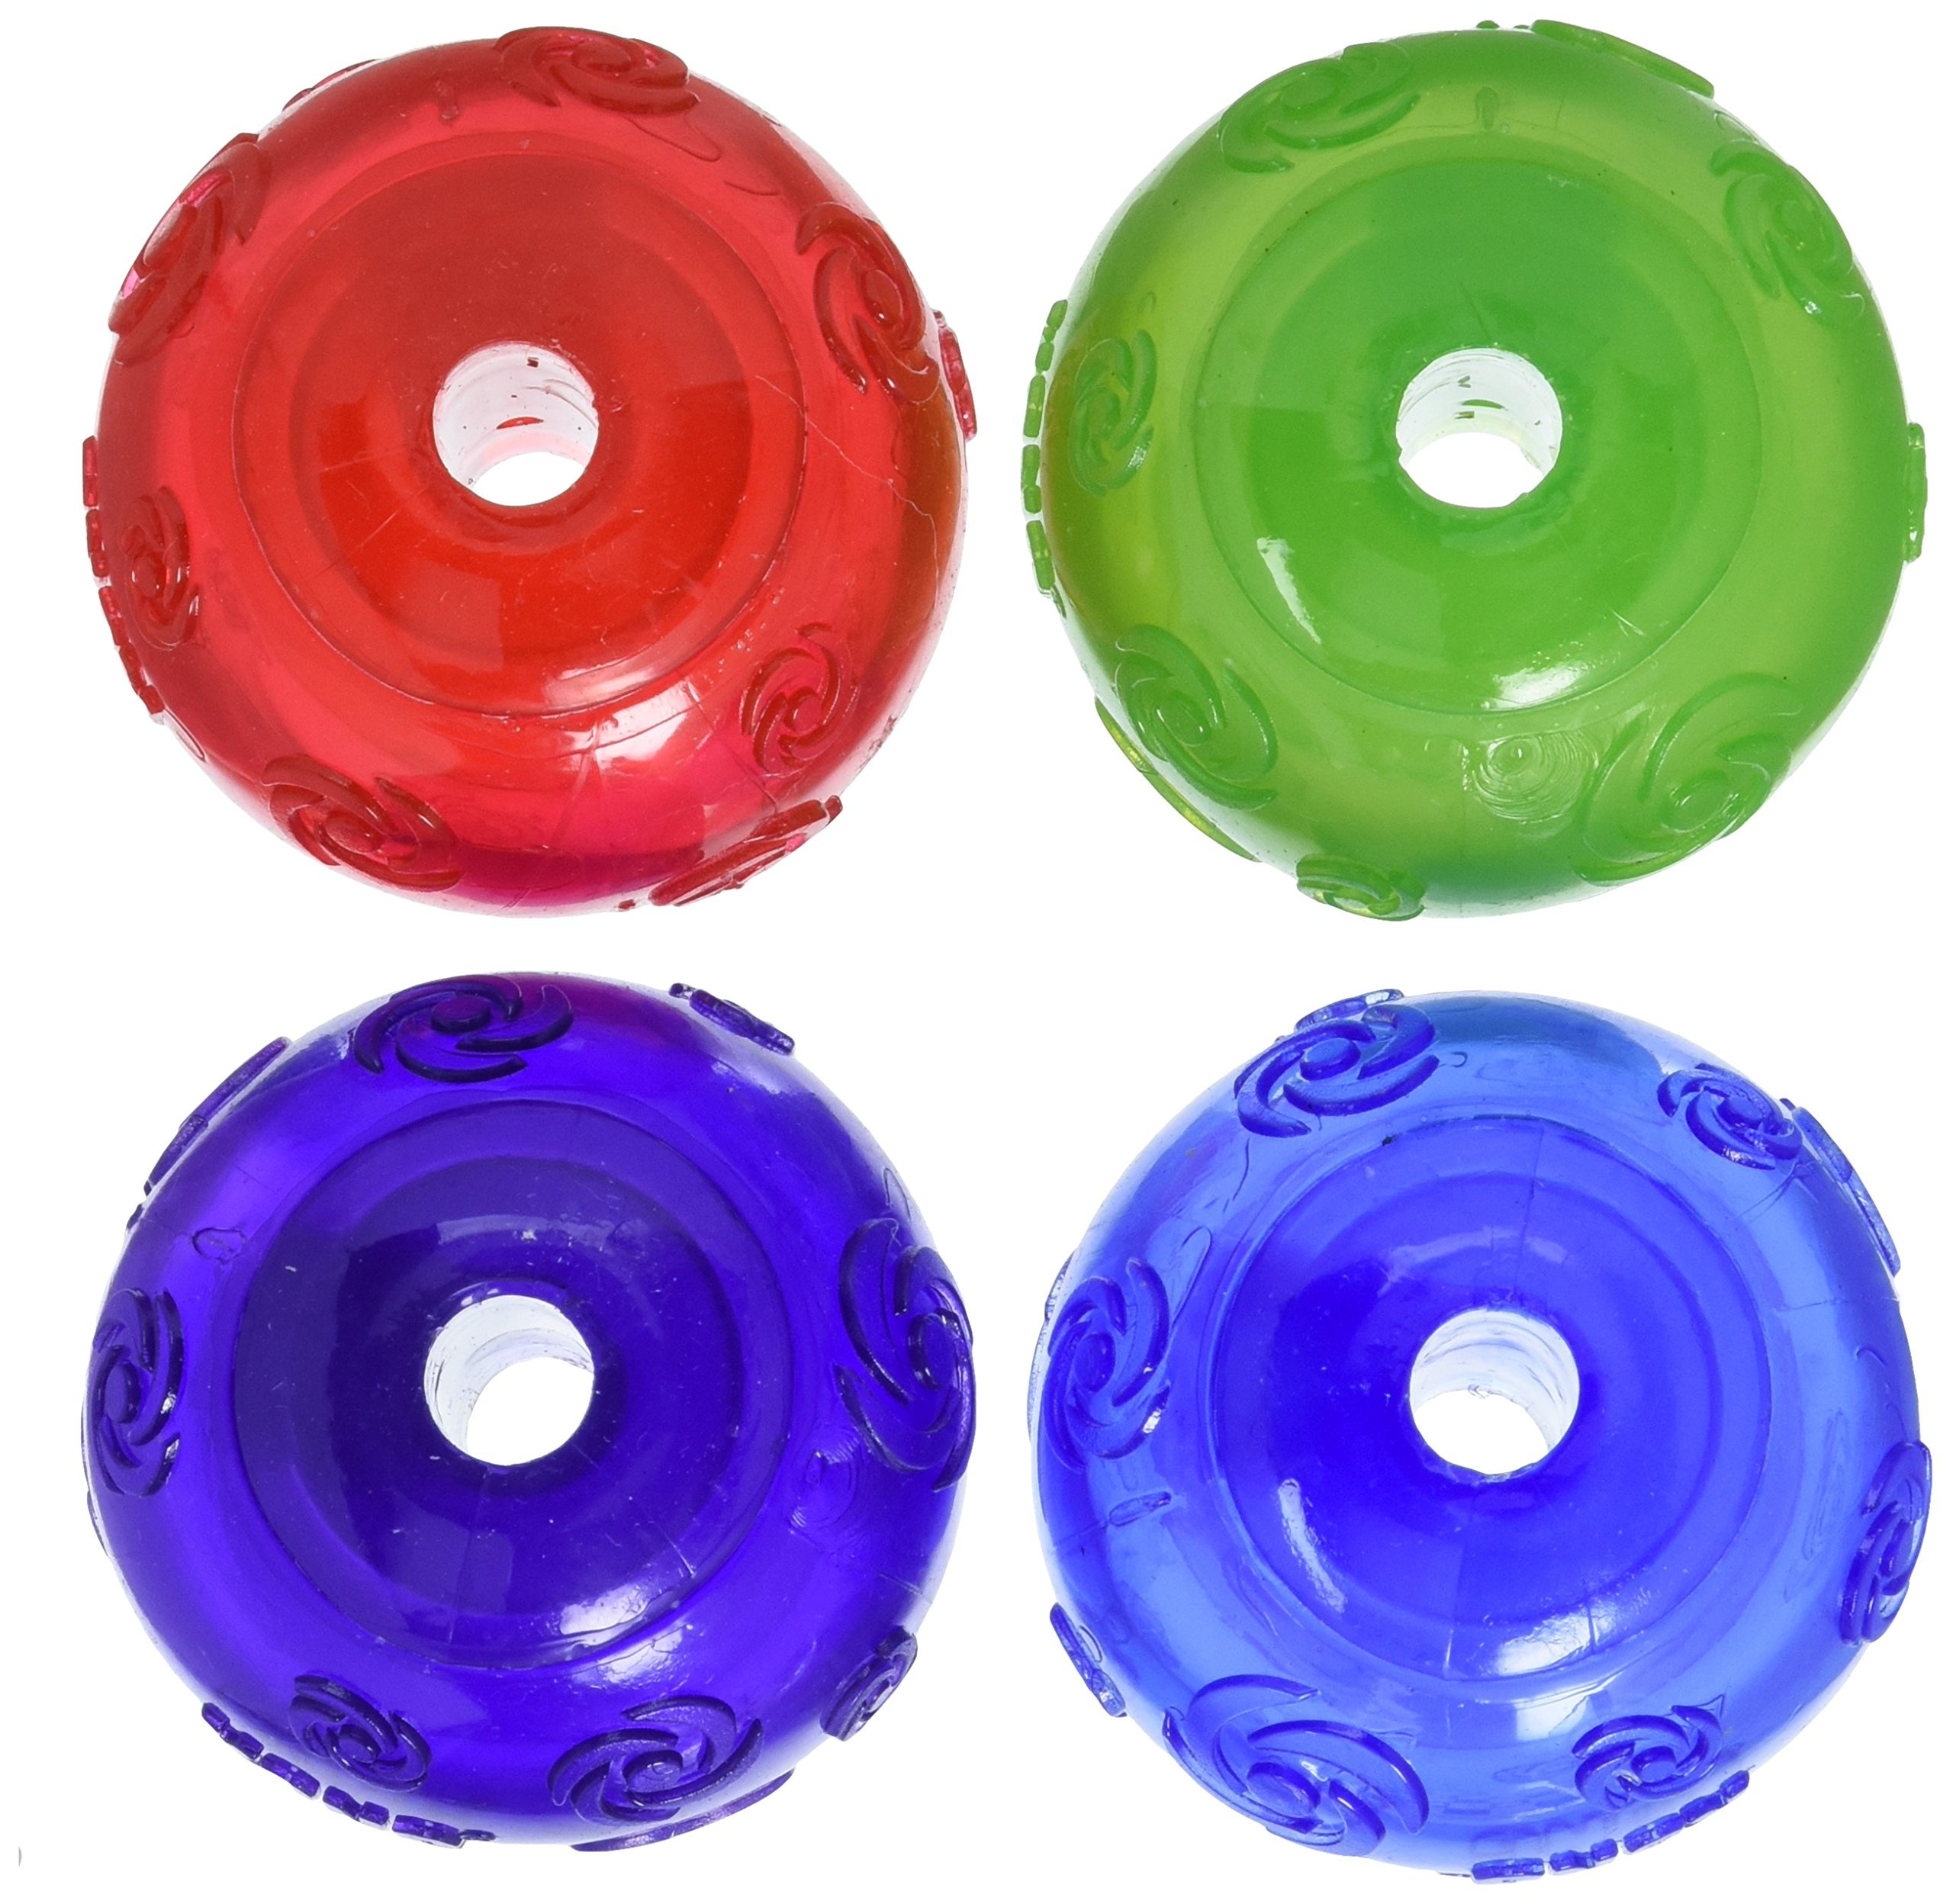 KONG Squeezz Ball Medium Assorted Colors Green, Red, Blue, Purple 4pk